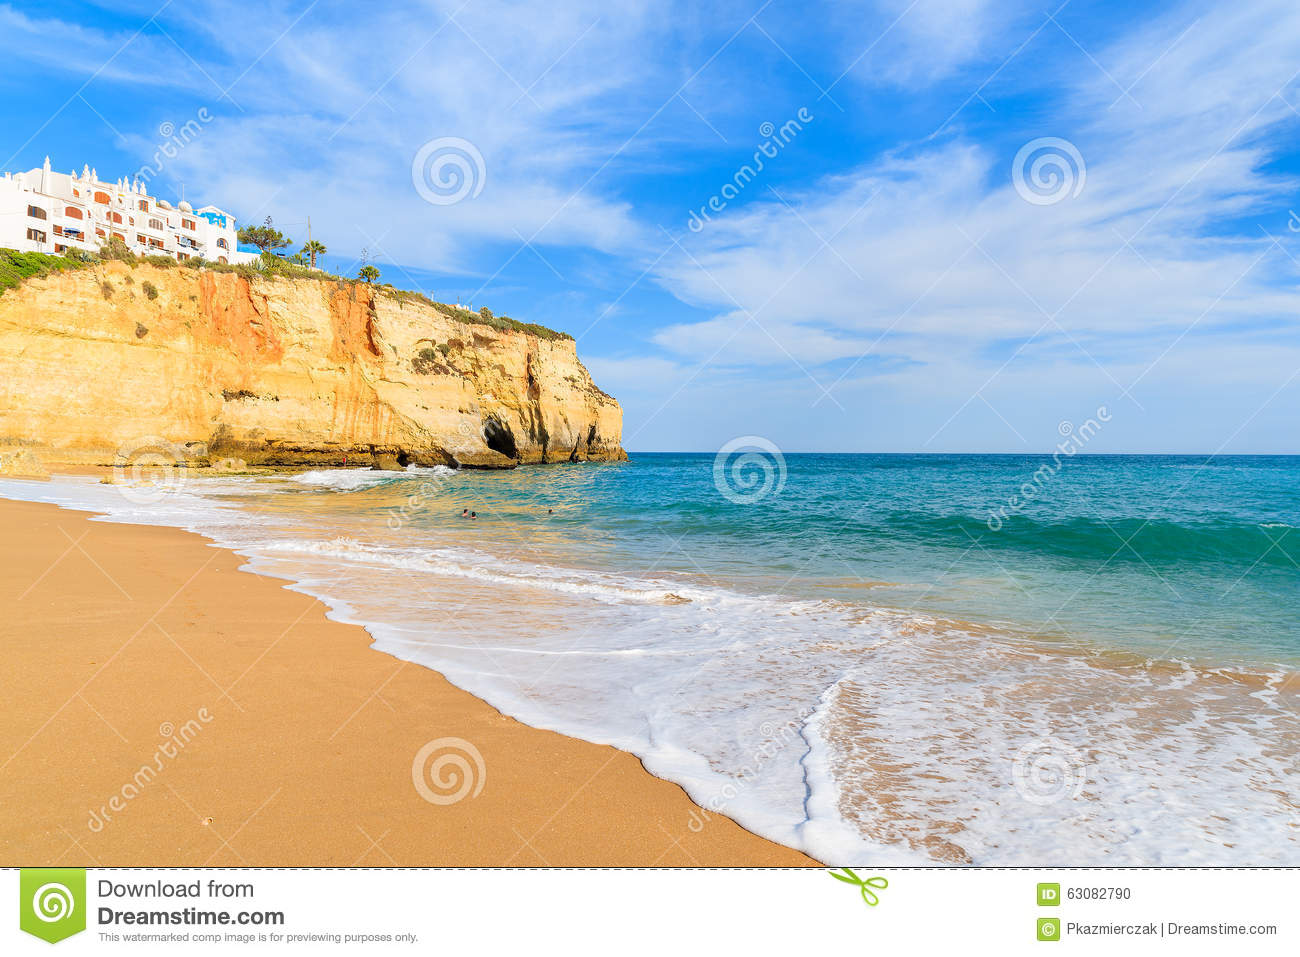 Download Ressac Sur La Plage Sablonneuse Dans La Ville De Carvoeiro Photo stock - Image du sunset, nature: 63082790